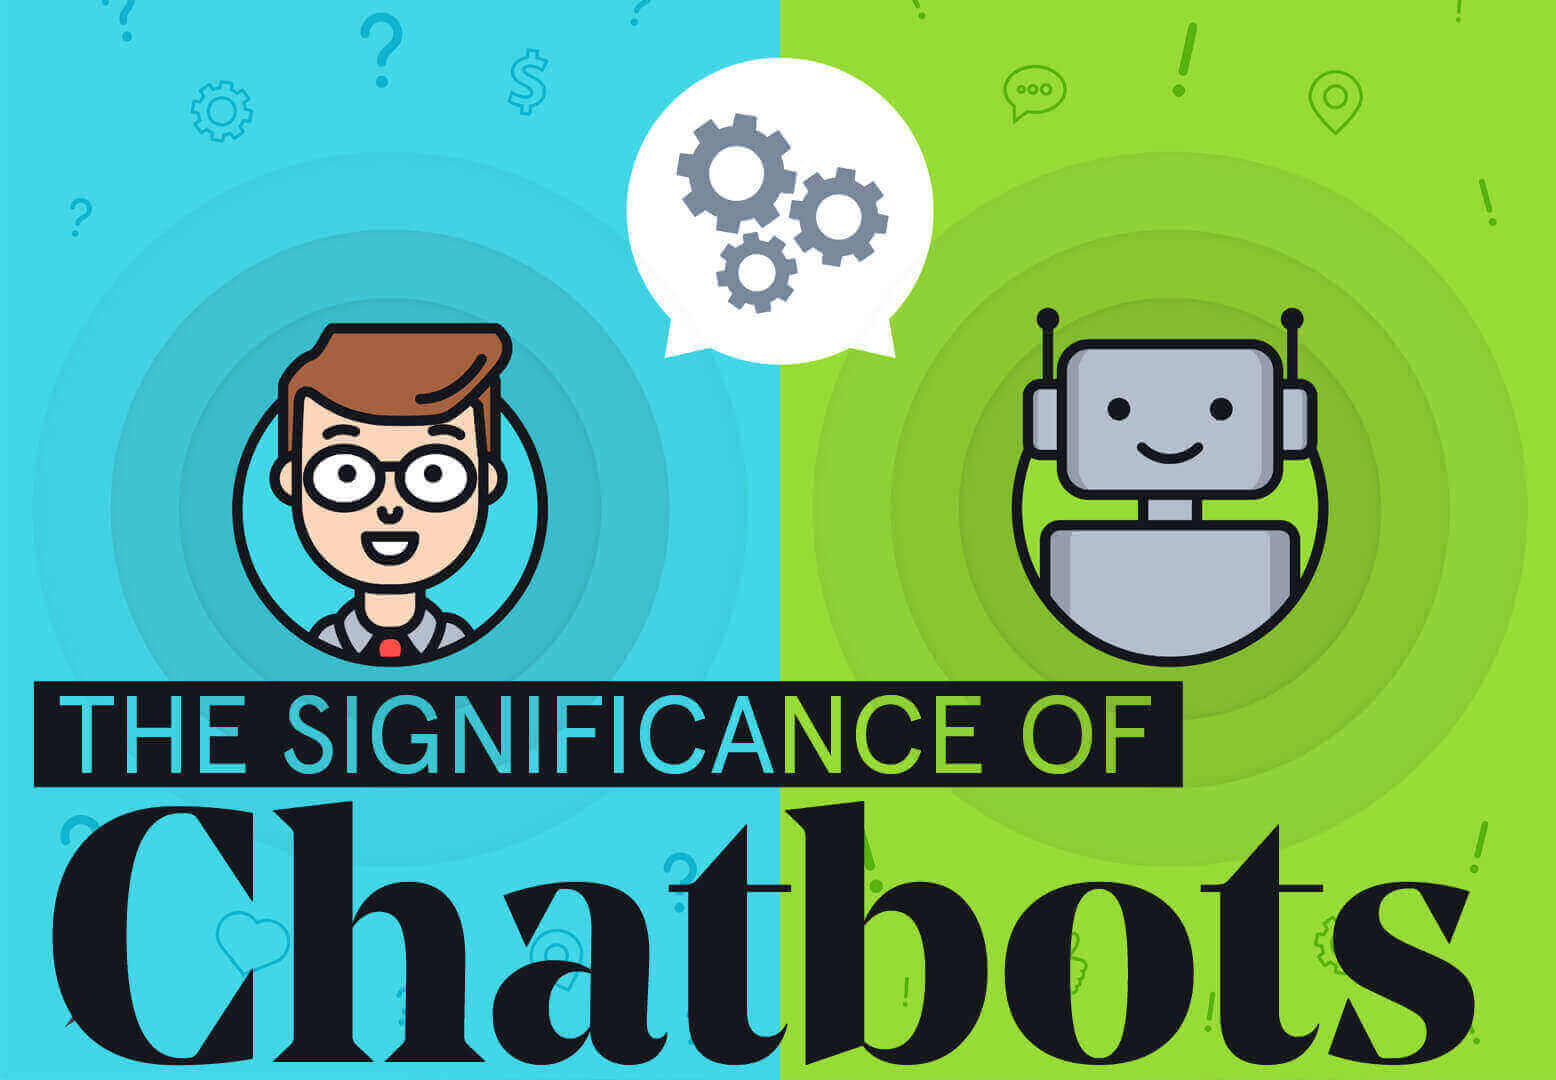 The Significance Of Chatbots